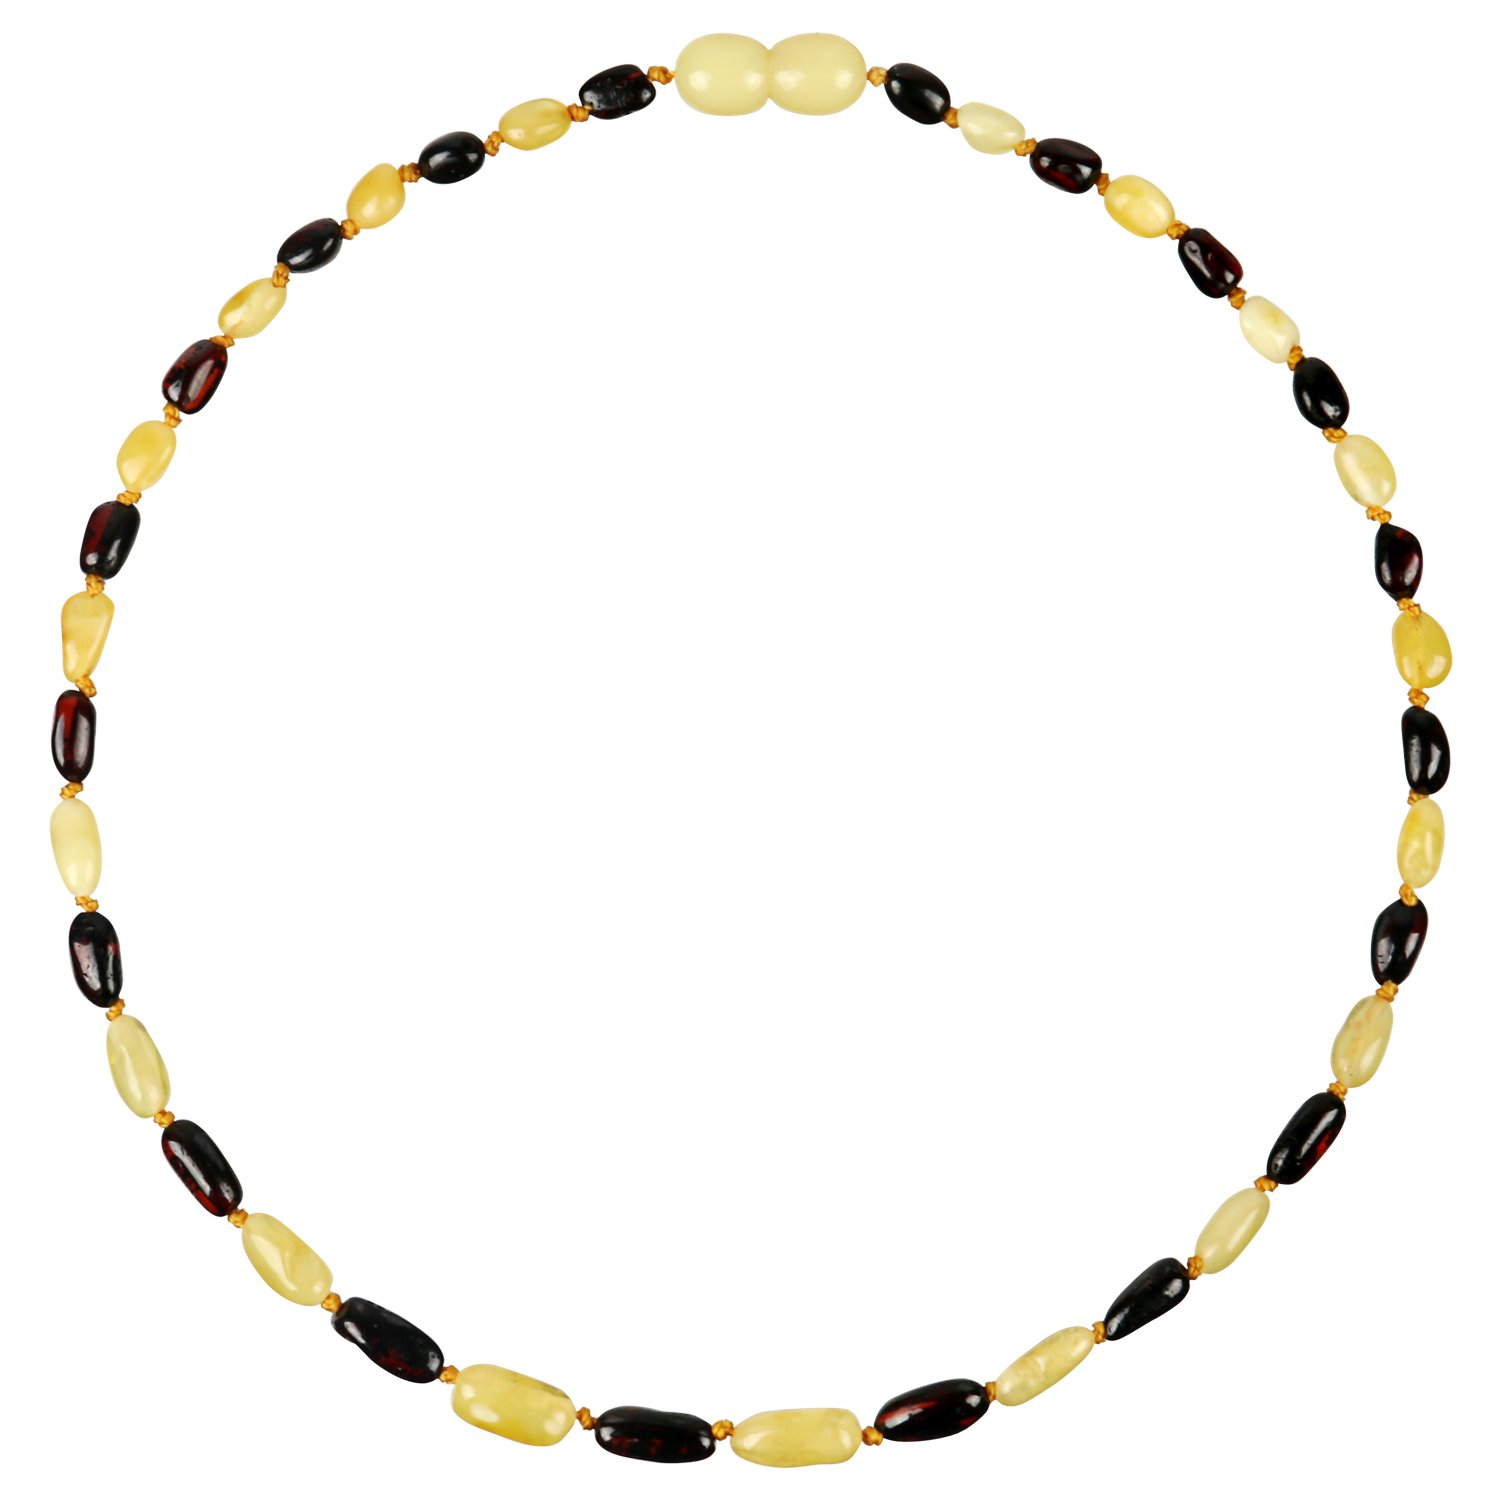 [Stock Clearance] Amber Teething Necklace for Toddler Baby (Unisex – Cherry/Milk – 12.5 inches), 100% Authentic Organic Baltic Amber Teething Necklace for Infant & Toddler